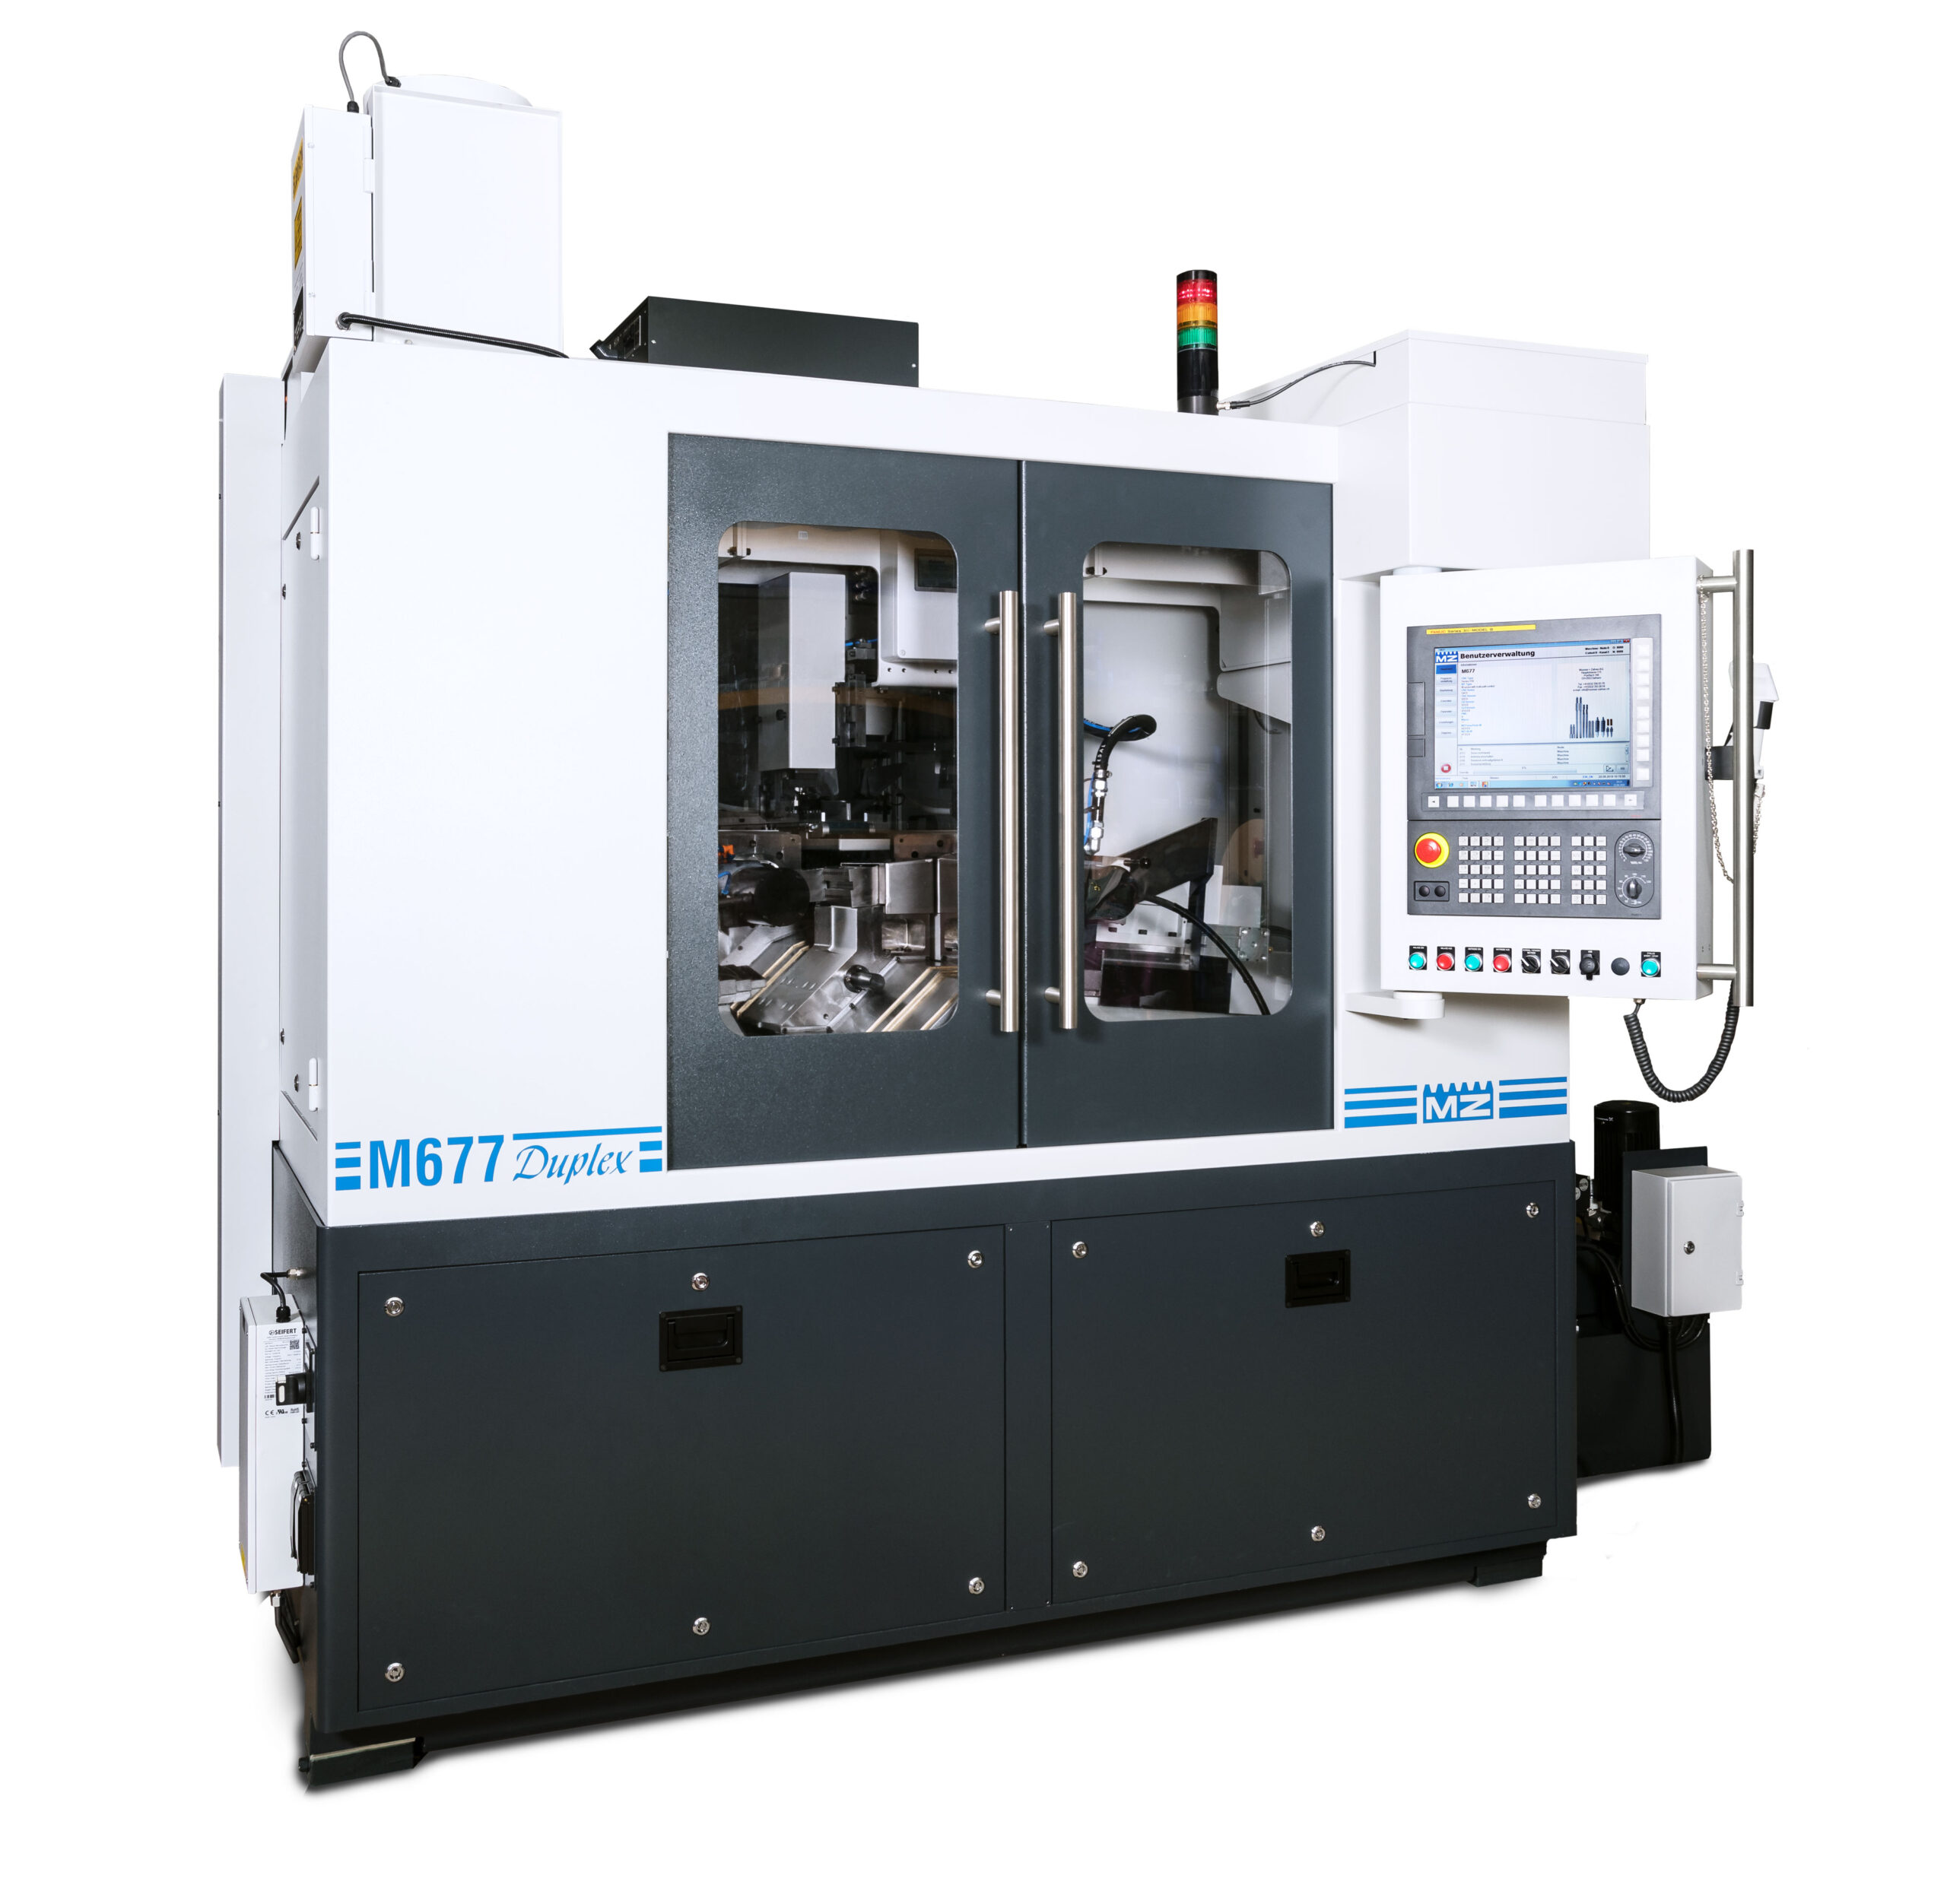 M677 Duplex worm milling machine